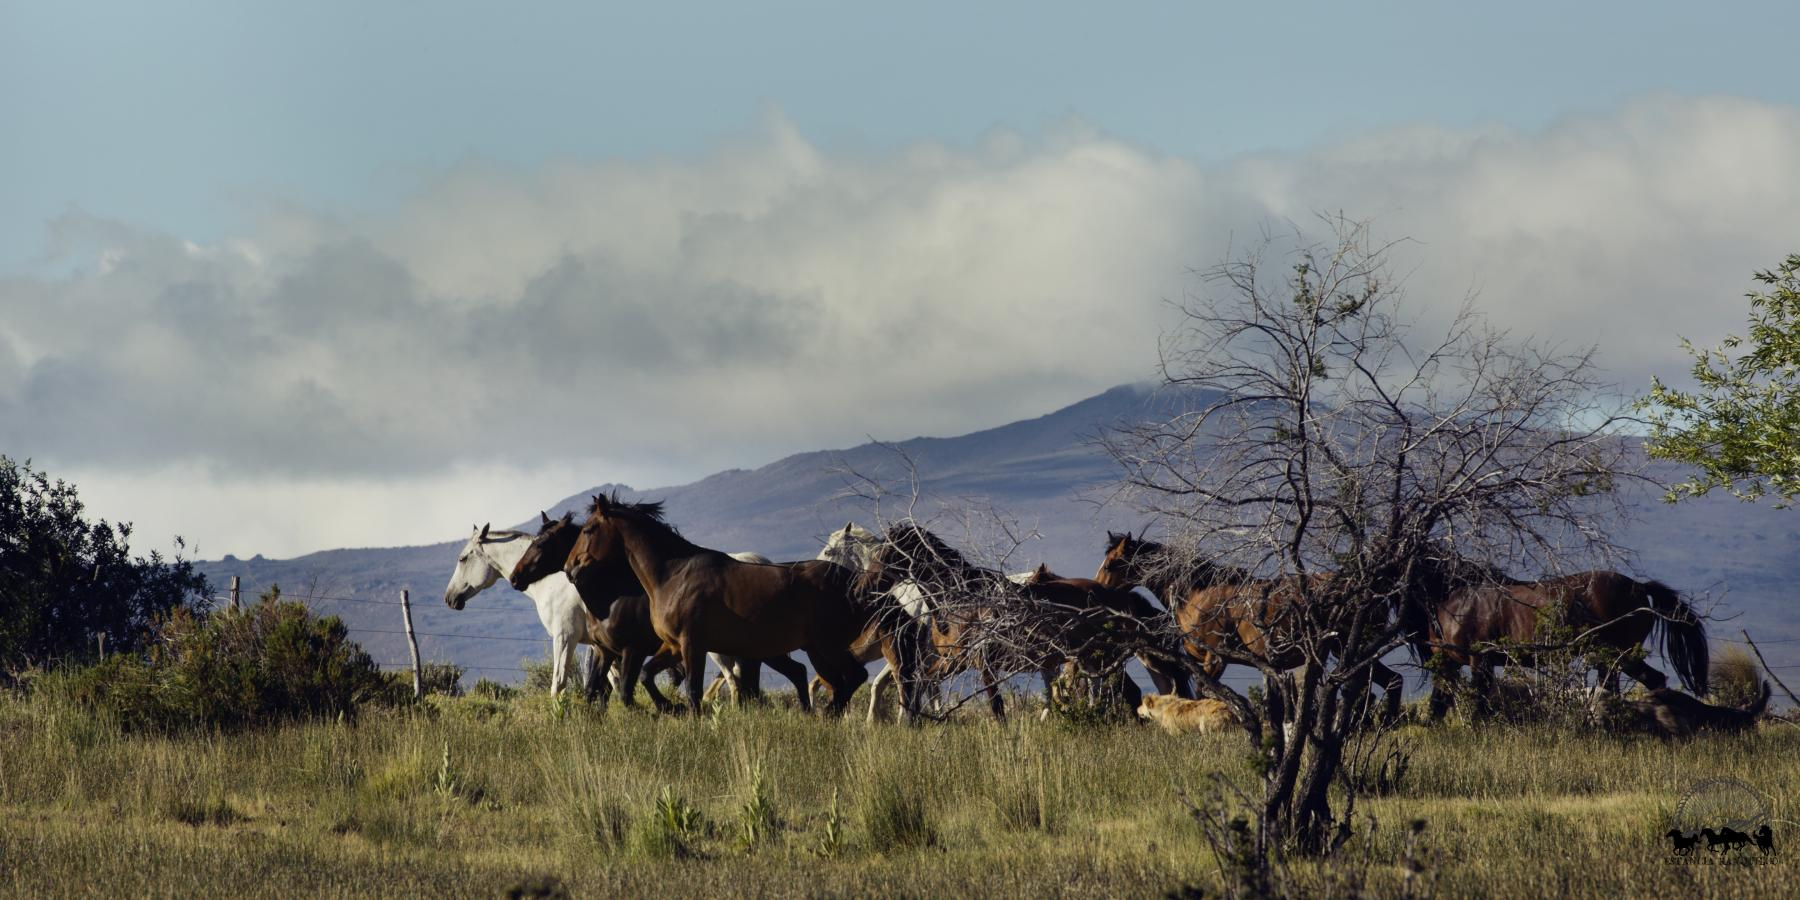 Horses running the Andes in Patagonia